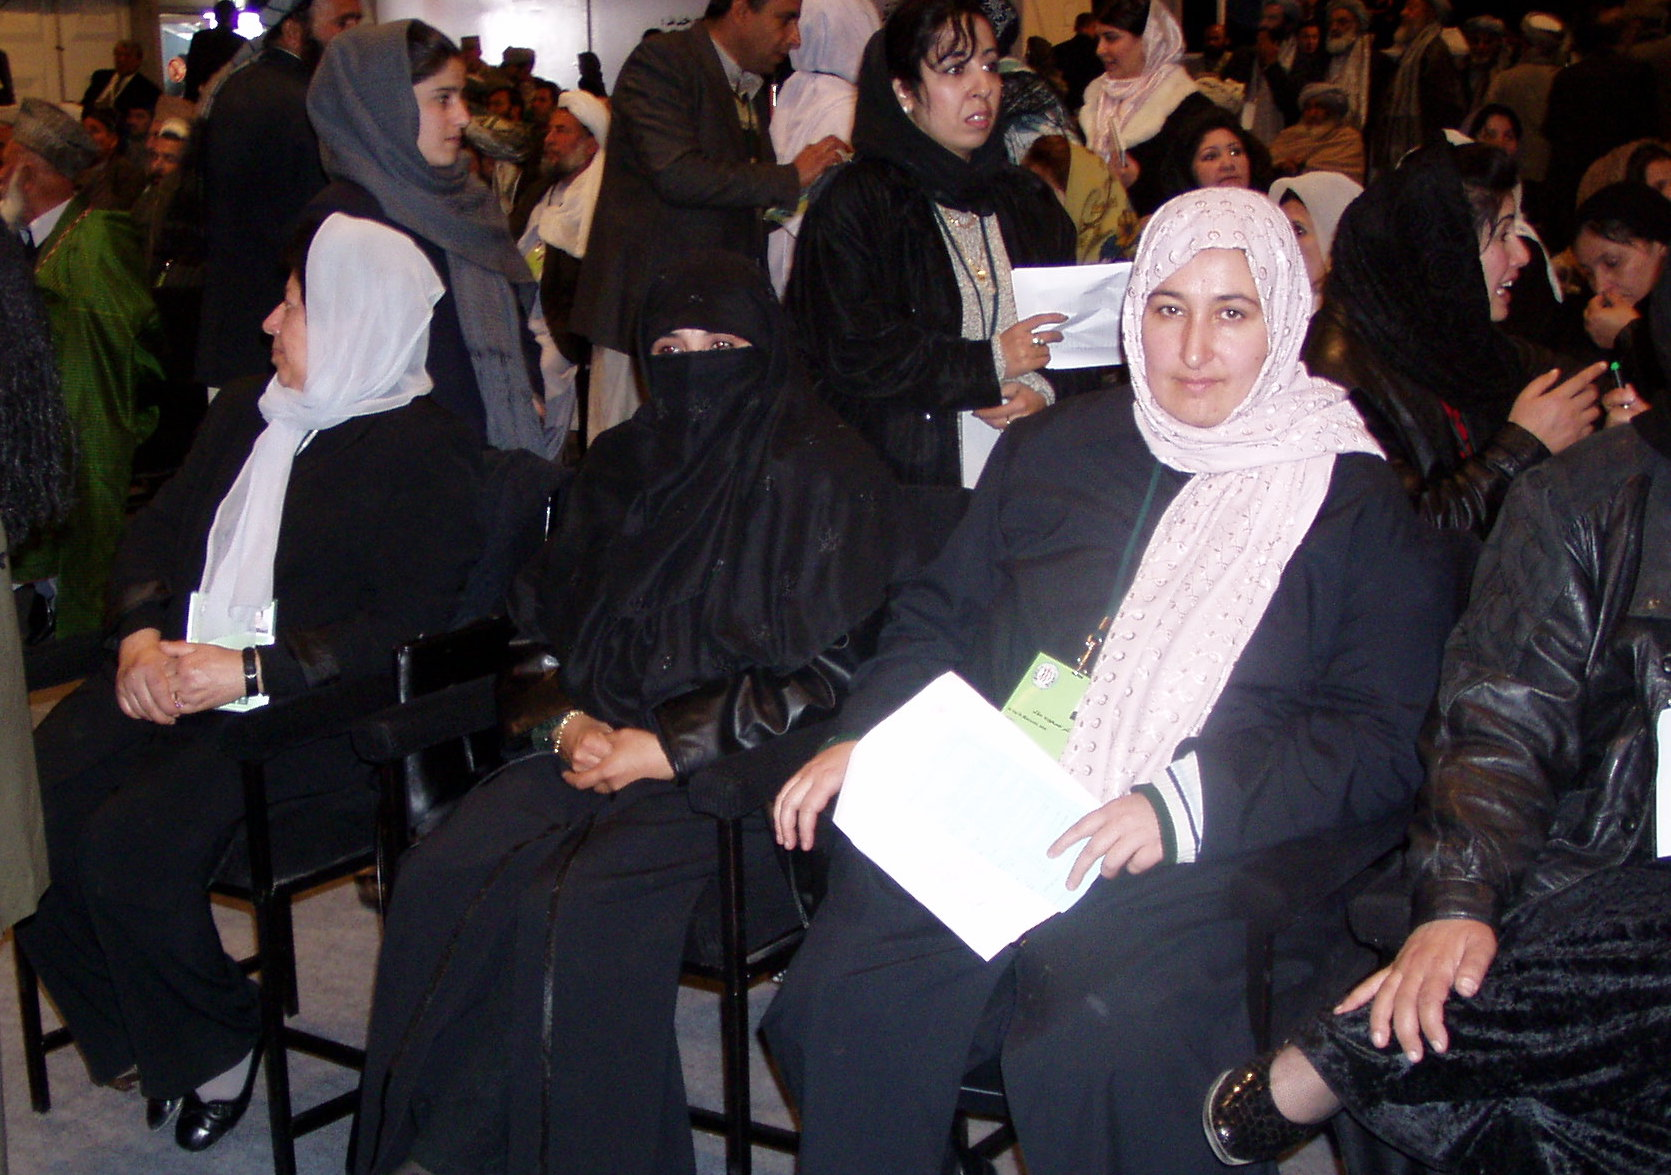 Women delegates sat separately during the the Constitutional Loya Jirga of 2003/04 (left to right: Suraya Parlika, unknown, Massuda Jalal). Photo: Thomas Ruttig